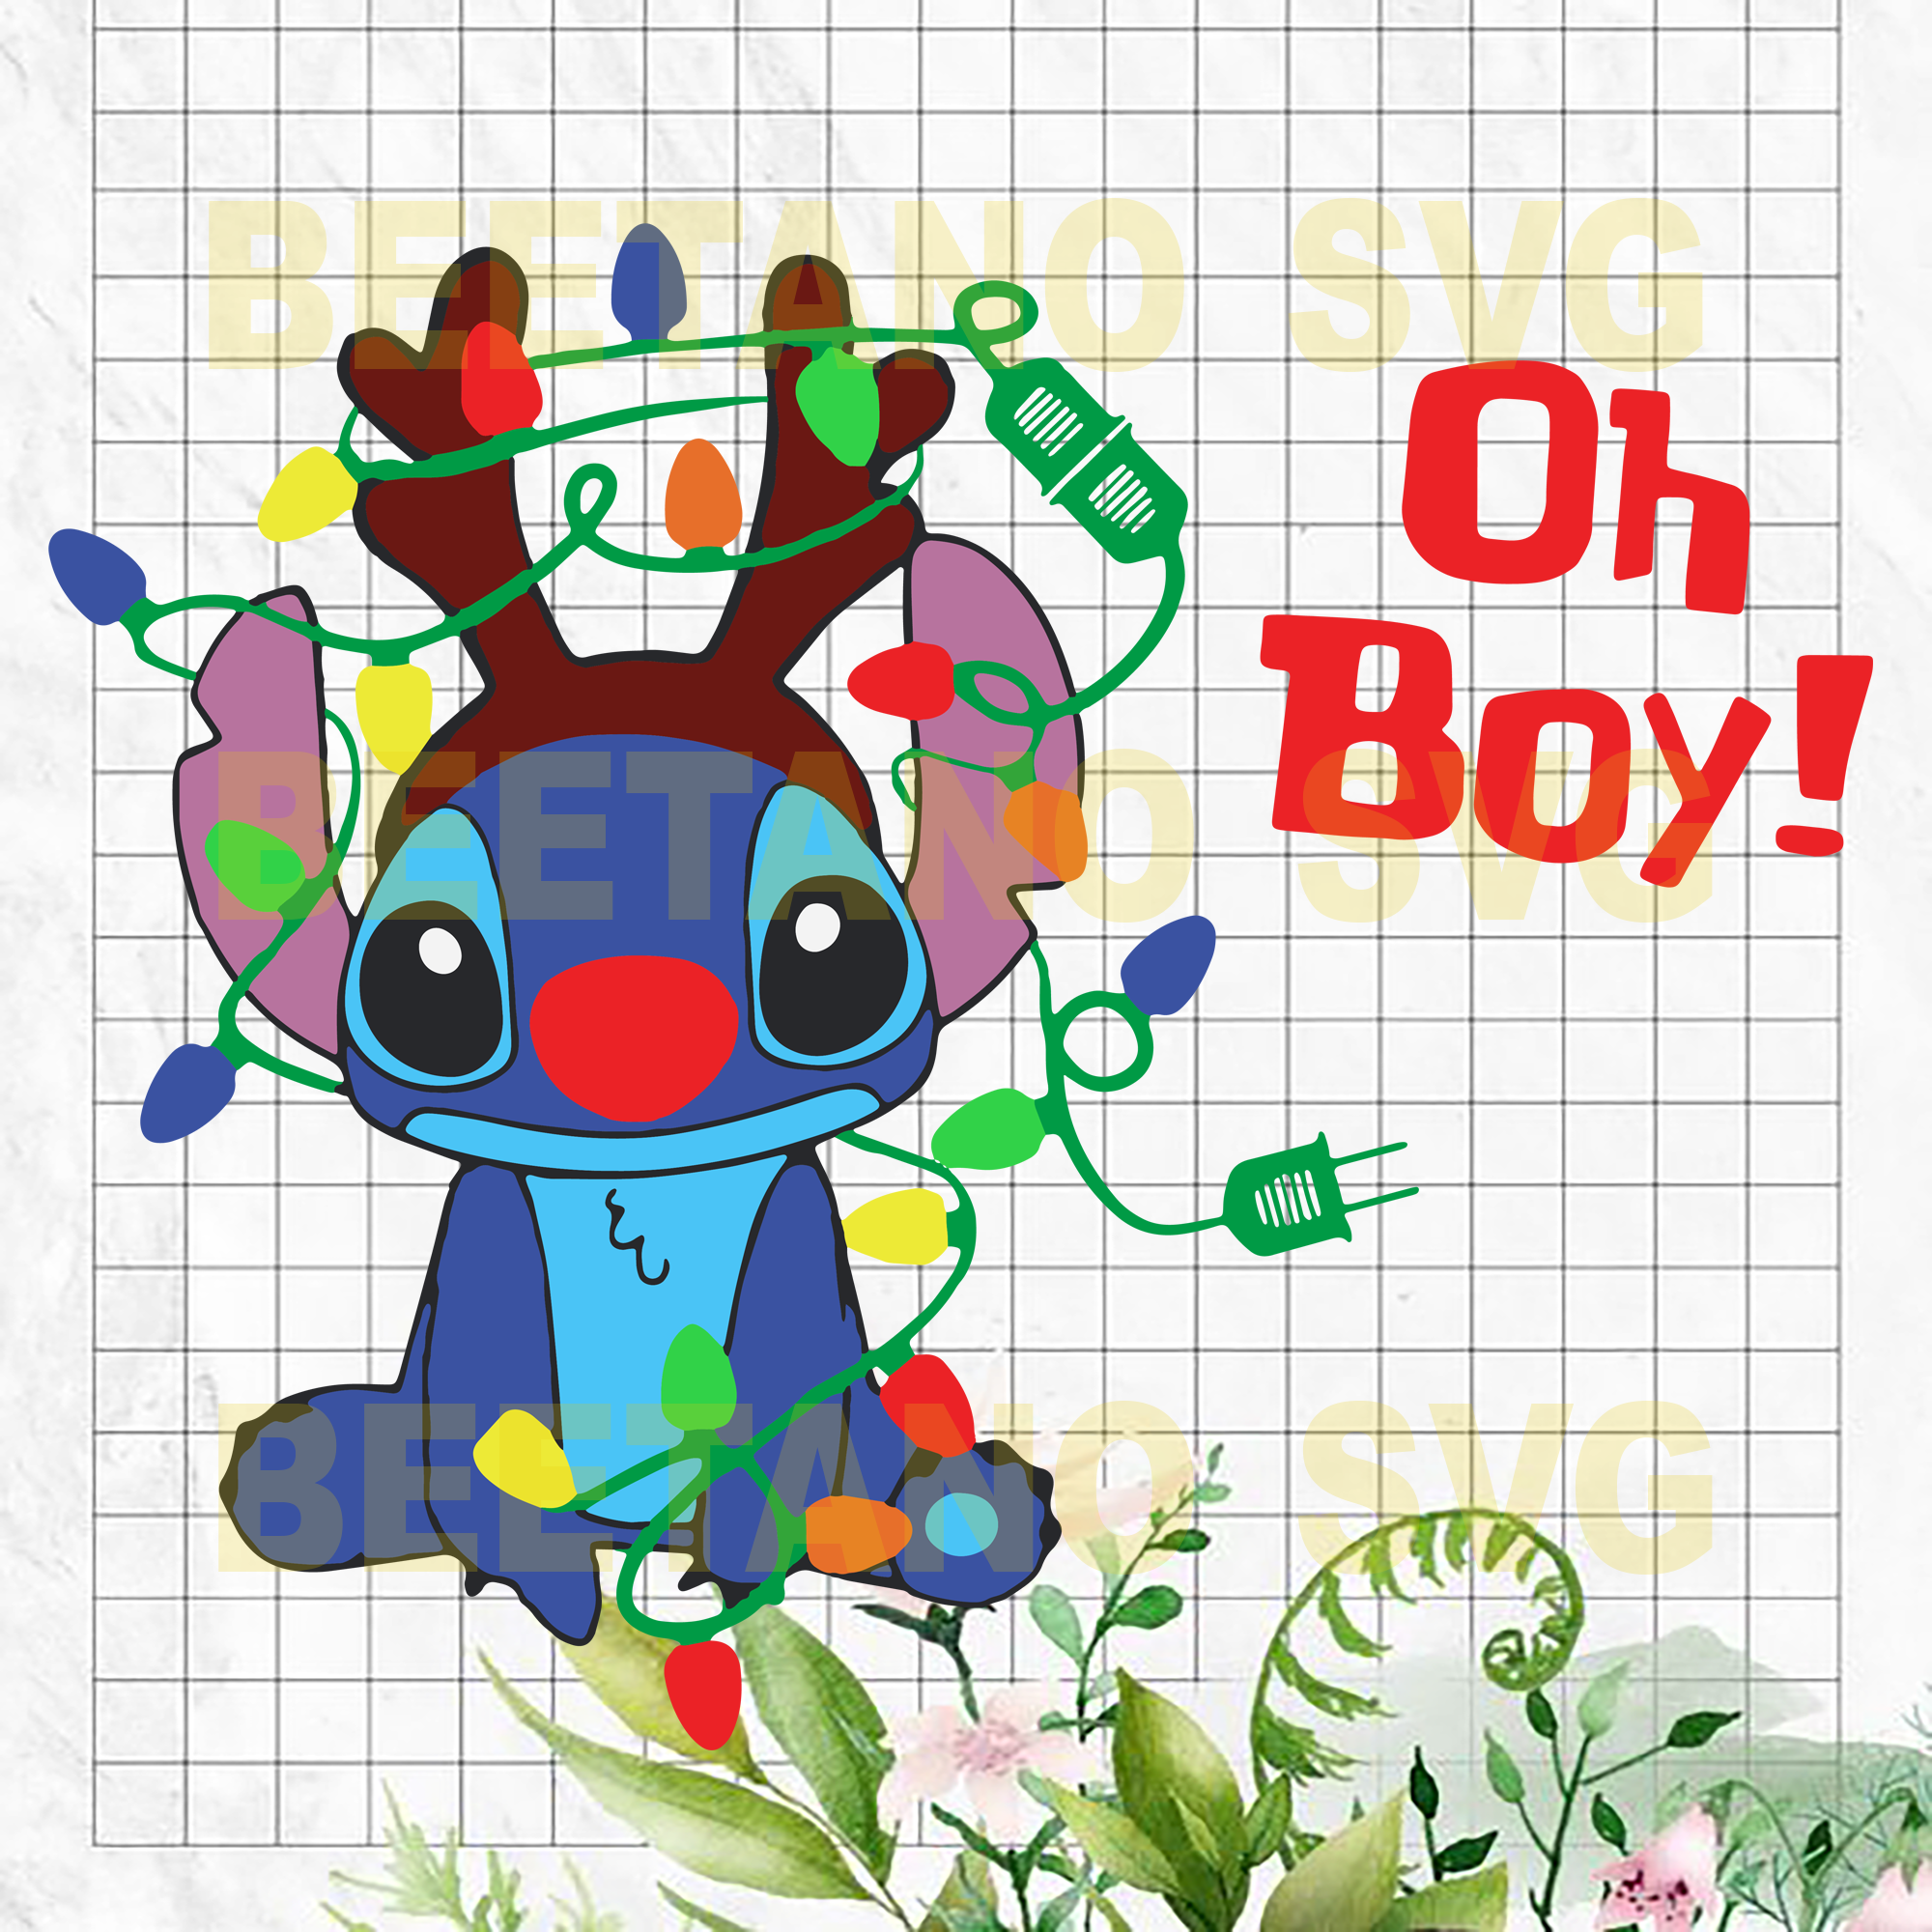 Oh Boy Christmas Lilo And Stitch Svg, Christmas Svg Files, Christmas Svg Cutting Files, Lilo And Stitch Cutting Files For Cricut, SVG, DXF, EPS, PNG Instant Download